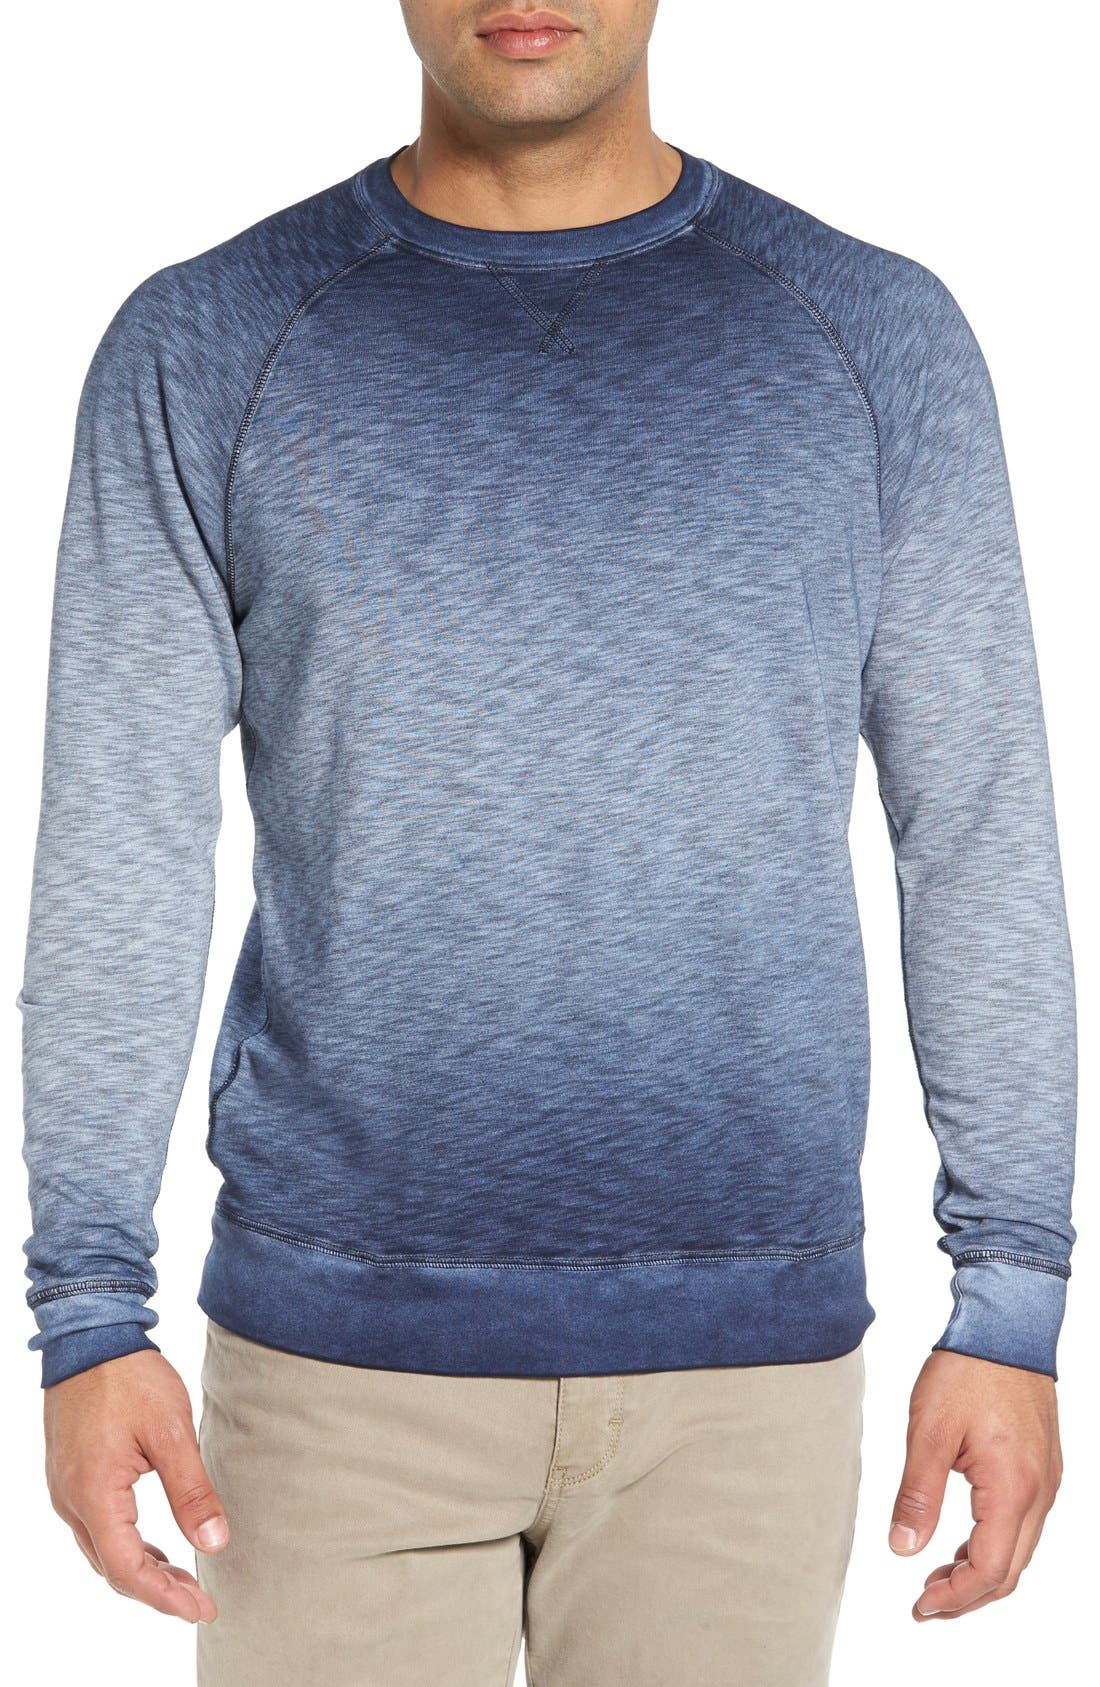 Alternate Image 1 Selected - Tommy Bahama 'Santiago' Ombré Crewneck Sweatshirt